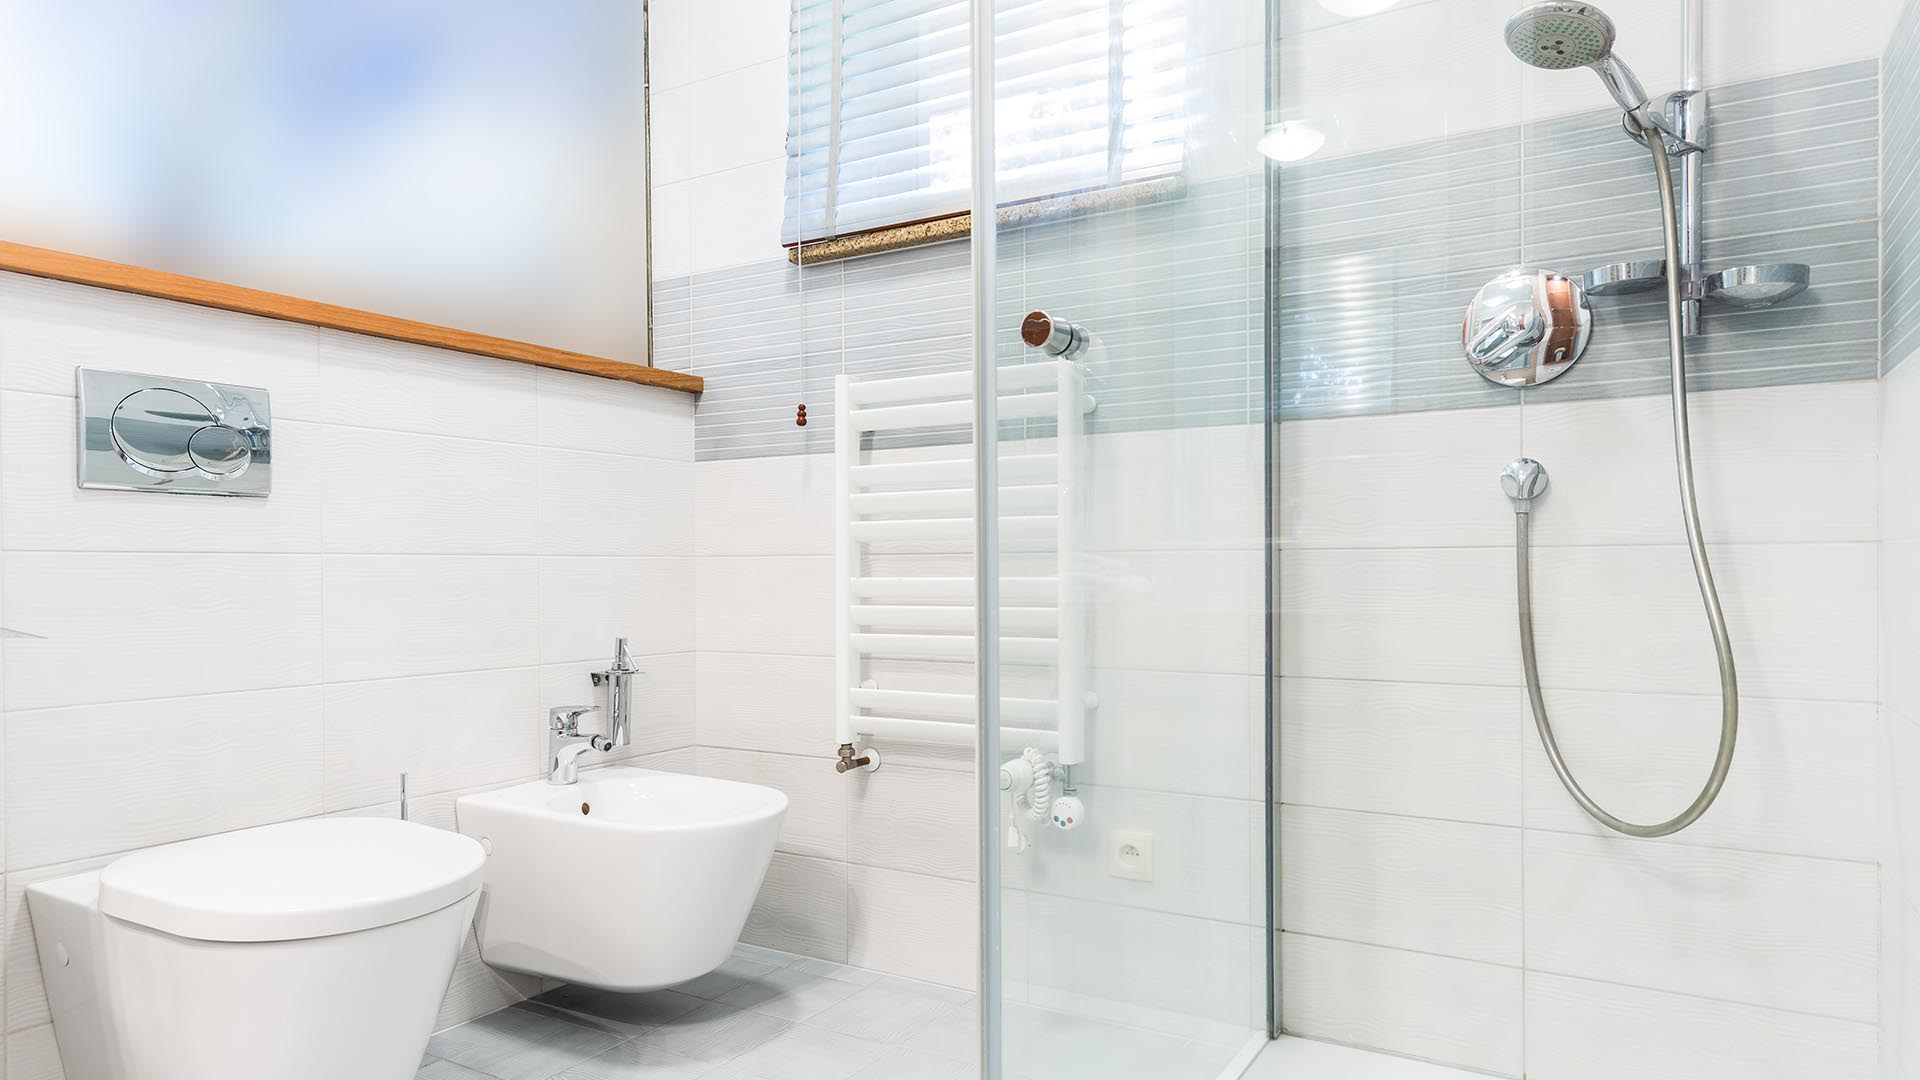 Bespoke bathrooms in North Devon from West Country Ltd | Want a ...